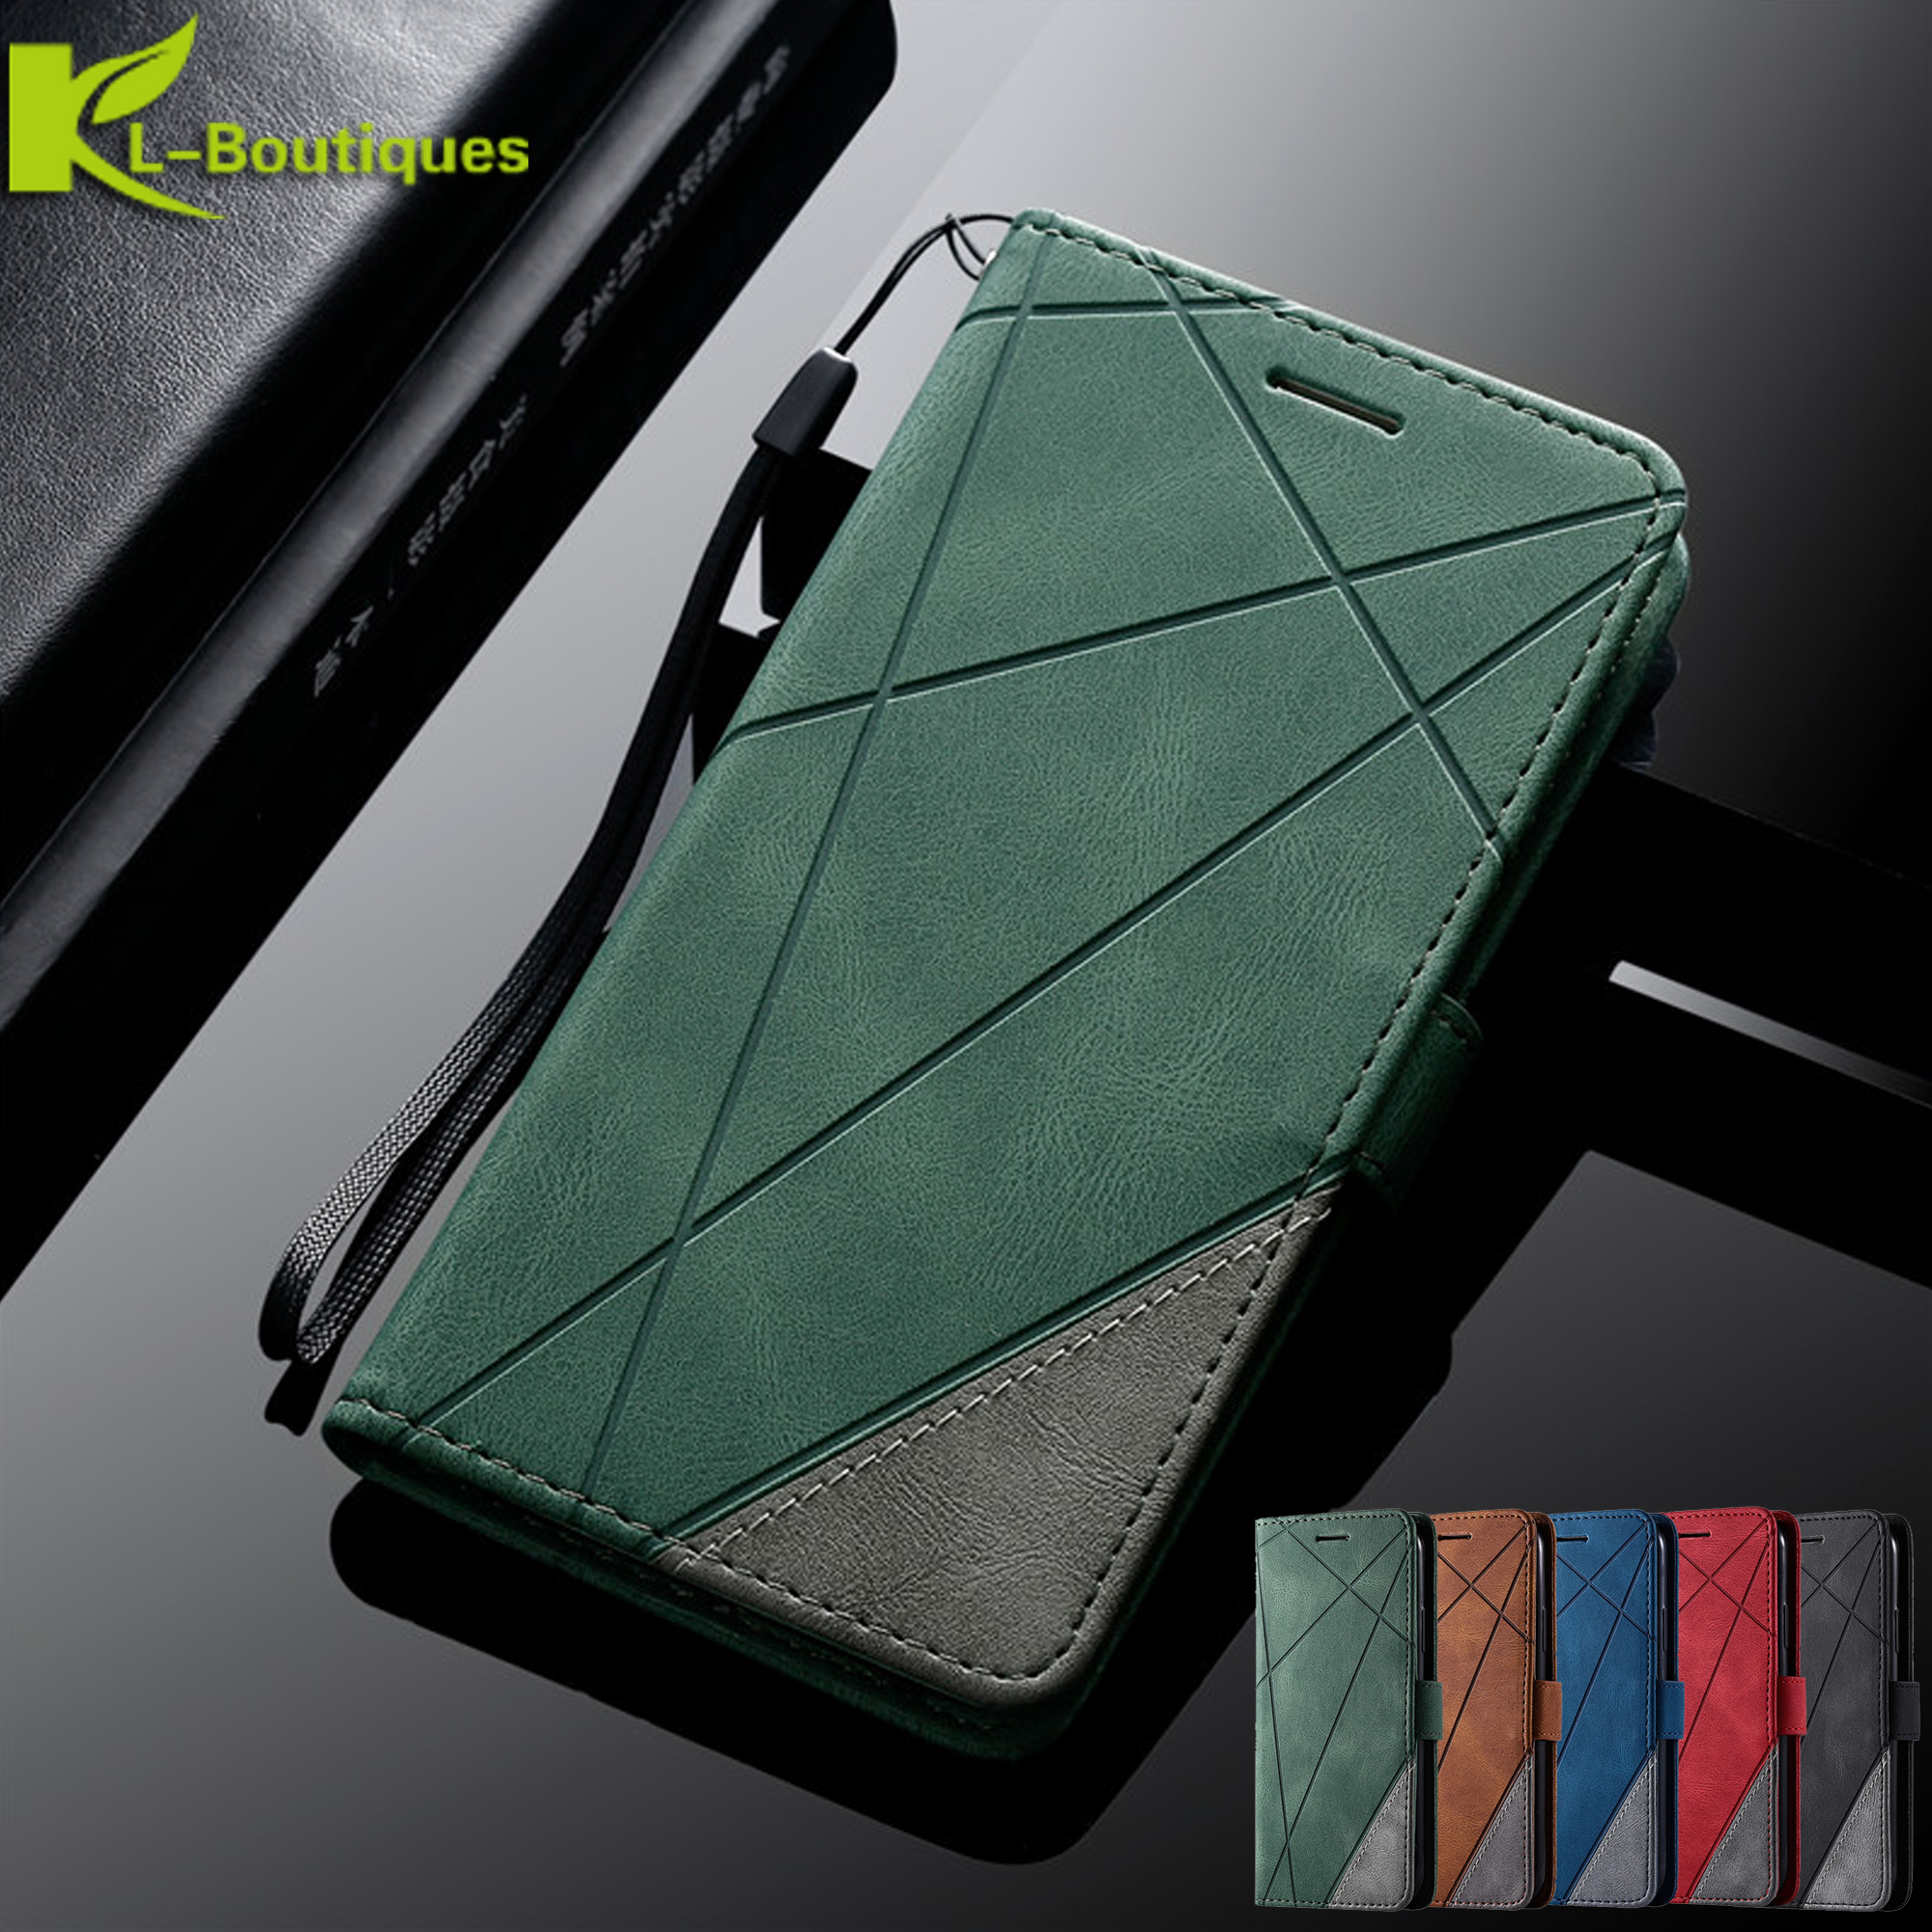 Luxury Case For Samsung Galaxy A 51 71 50 <font><b>70</b></font> 10 20 e 30 S 40 S7 Edge S8 S9 S10 S20 Ultra Plus A8 J6 <font><b>2018</b></font> A520 Leather Flip Case image